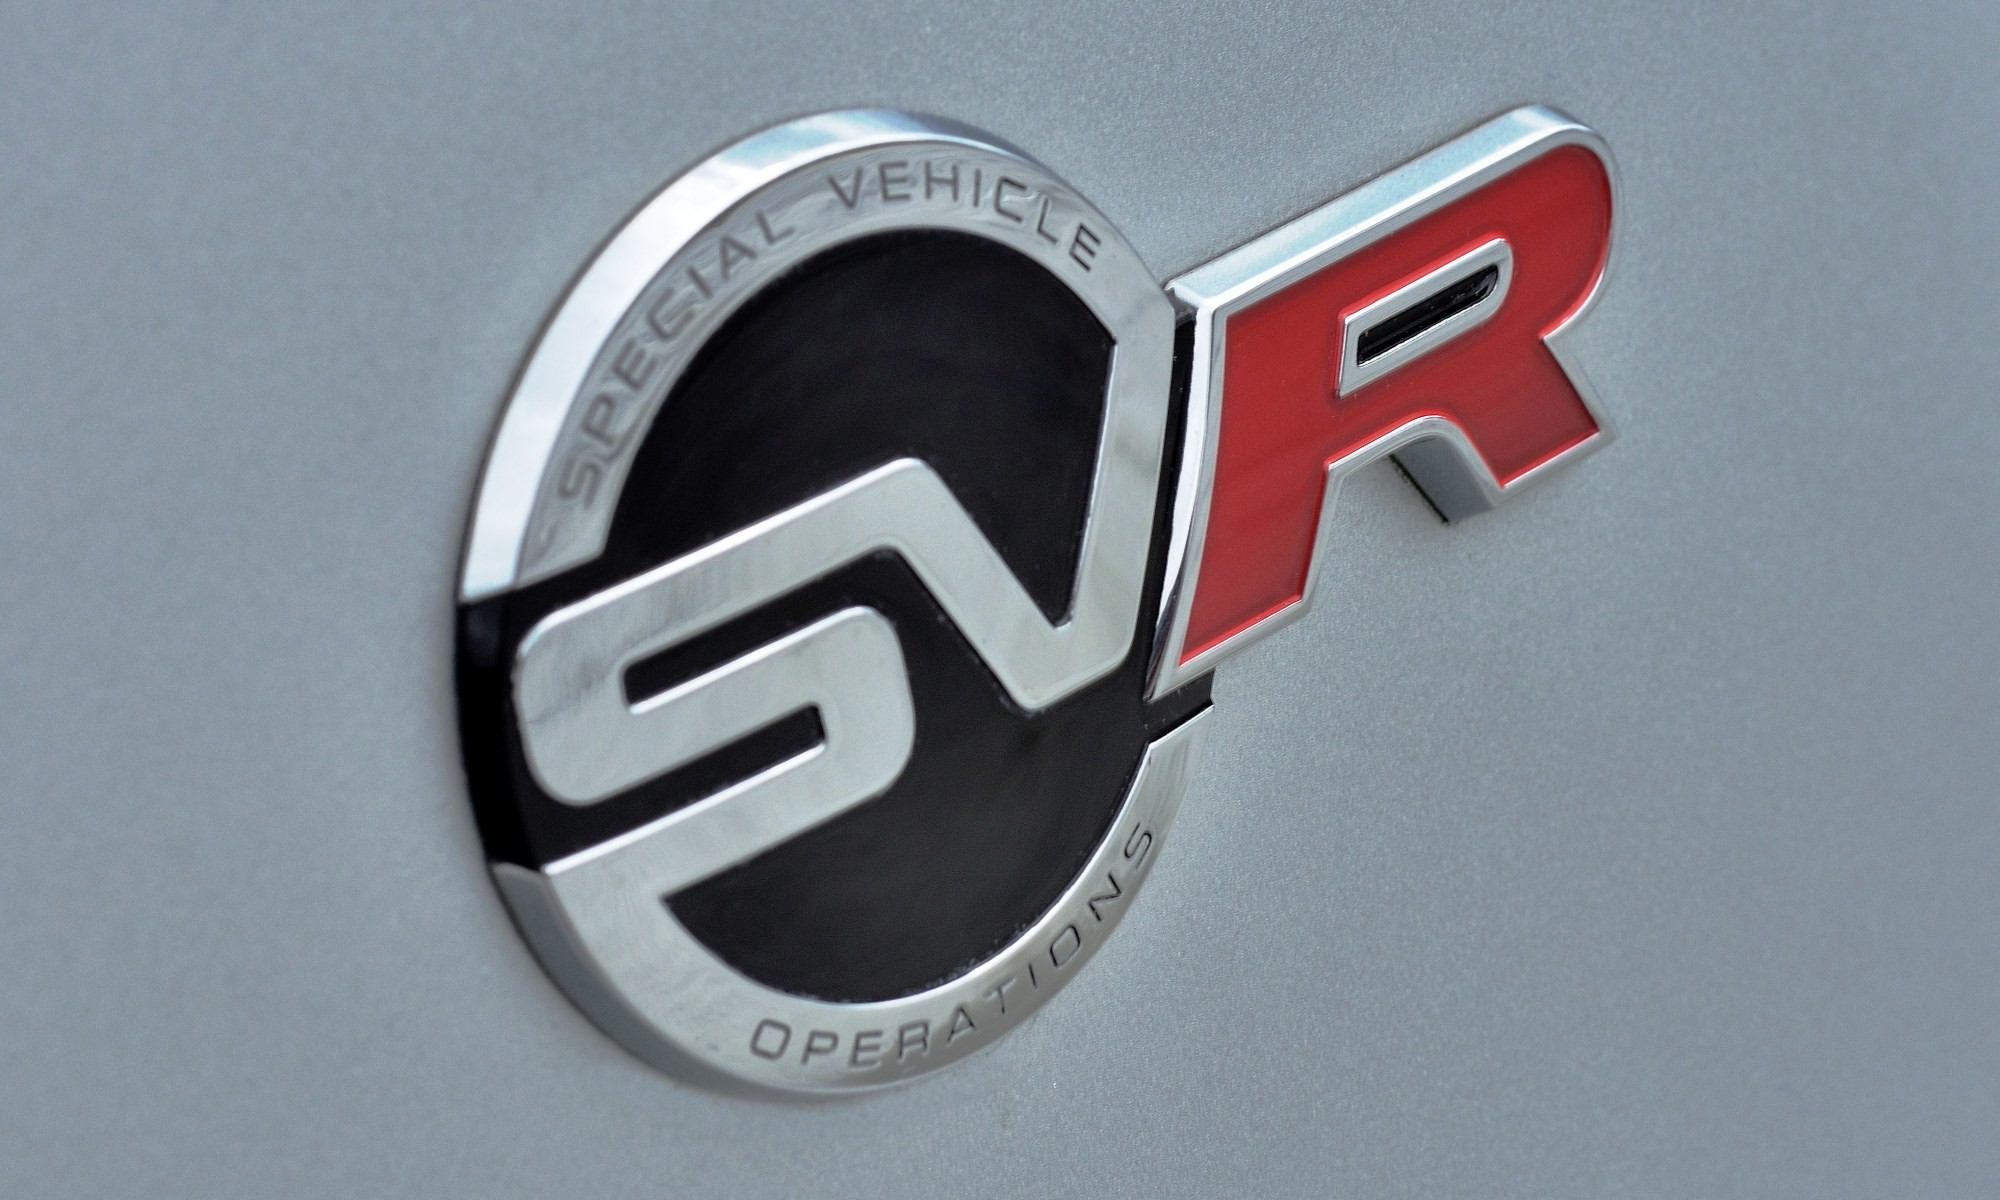 Jaguar SVR badge